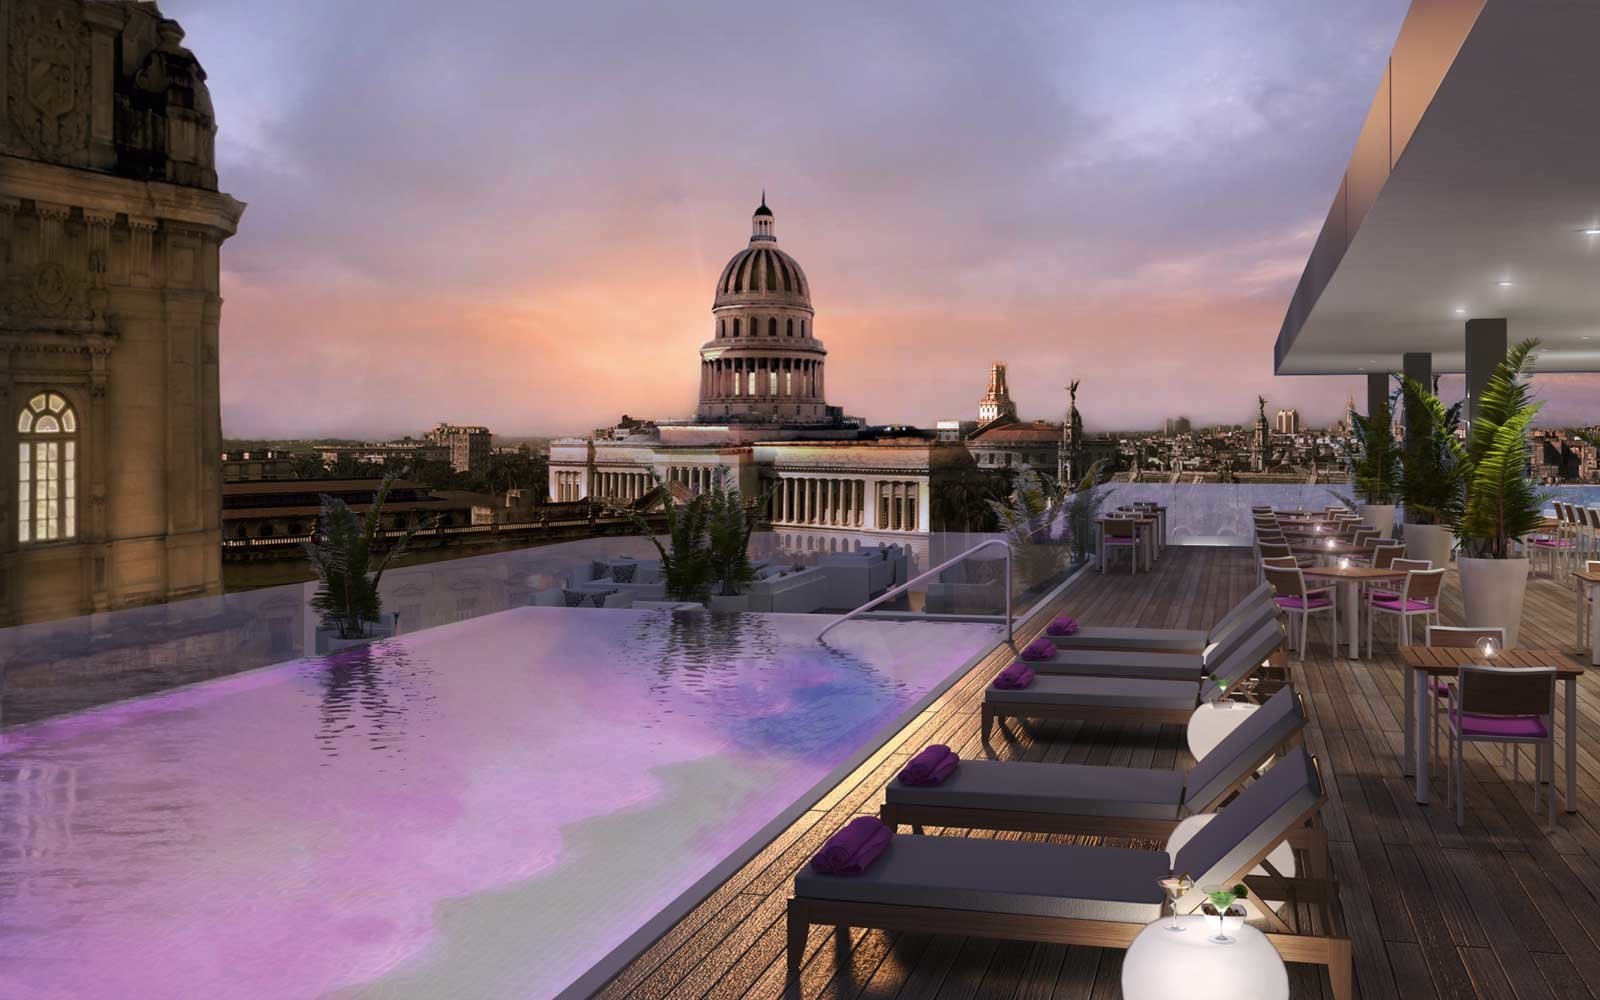 Cuba is getting its first five star hotel